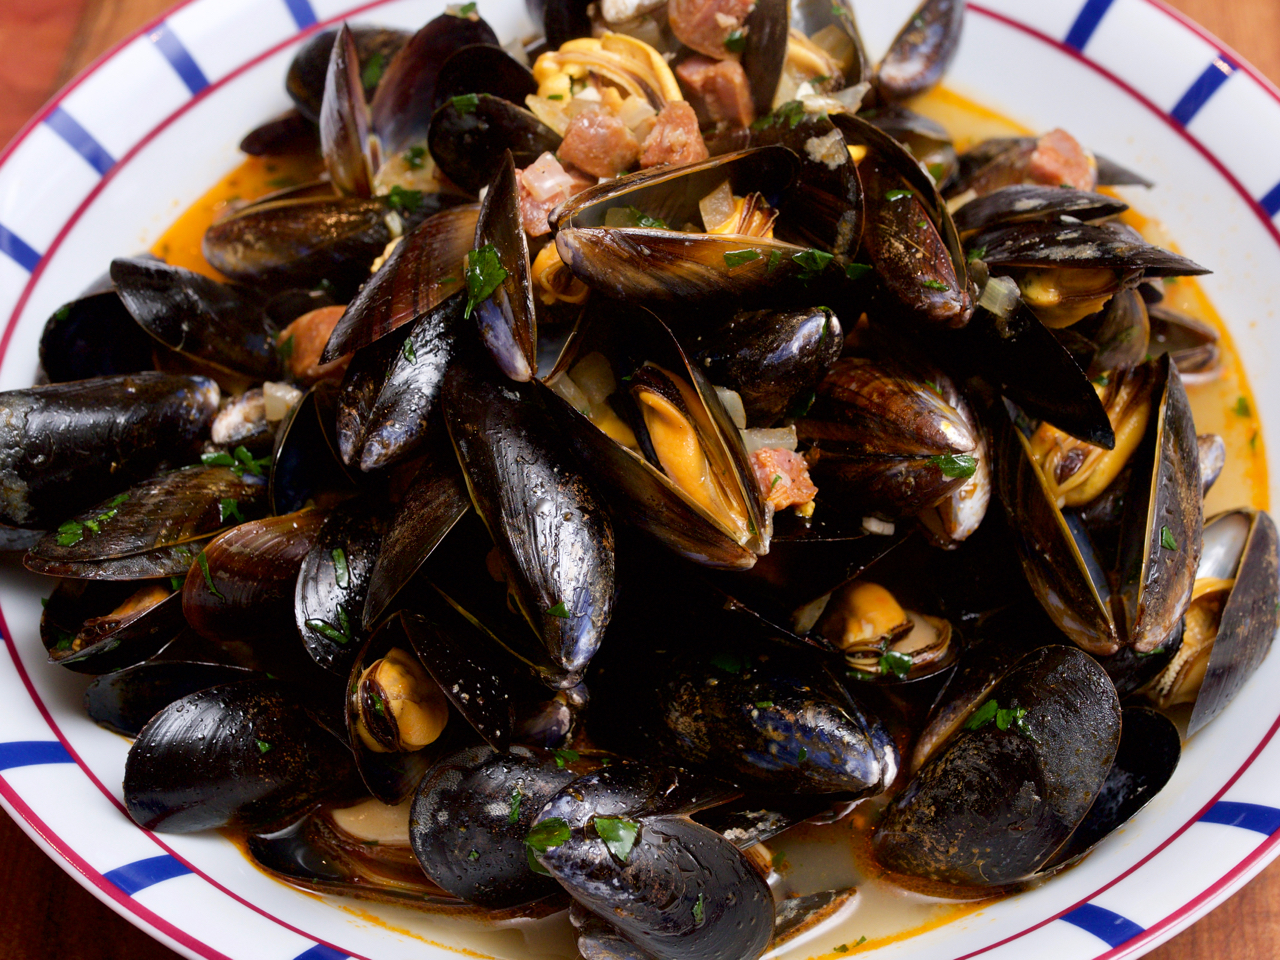 Mussels with chorizo and cider